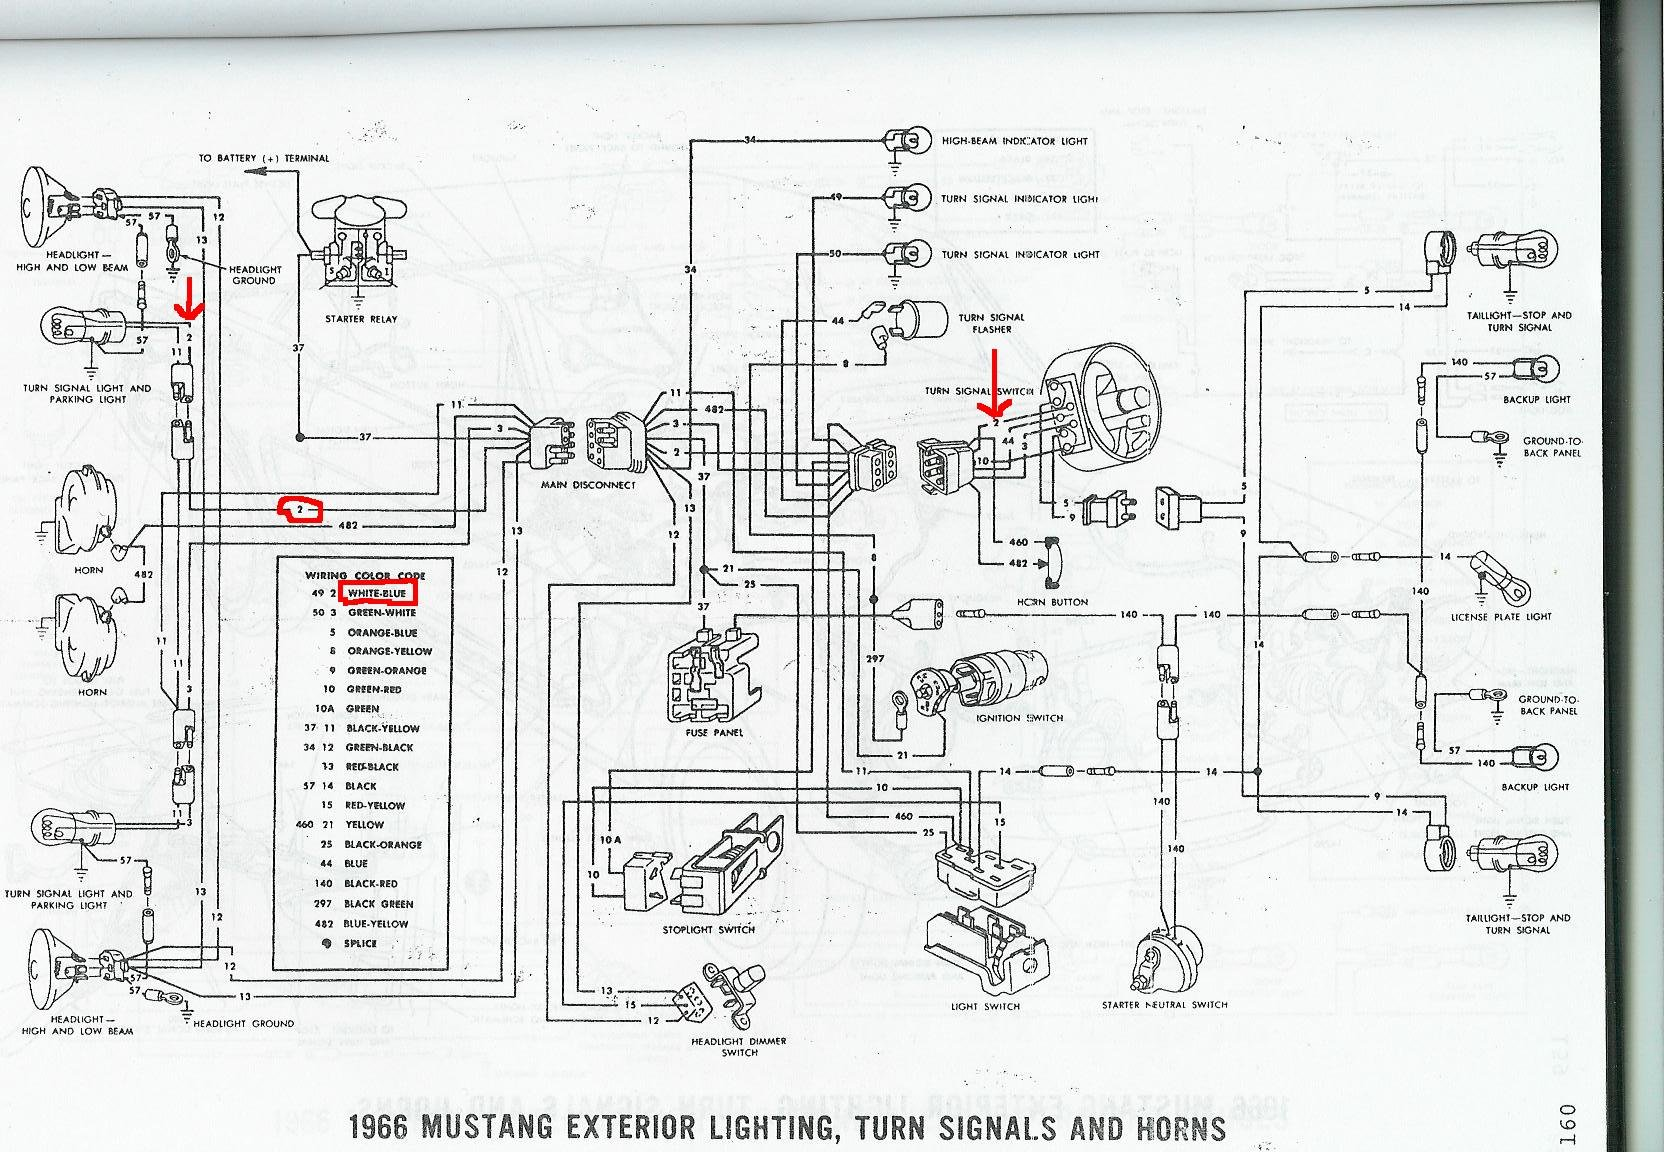 1968 Mustang Alternator Wiring Diagram from www.allfordmustangs.com